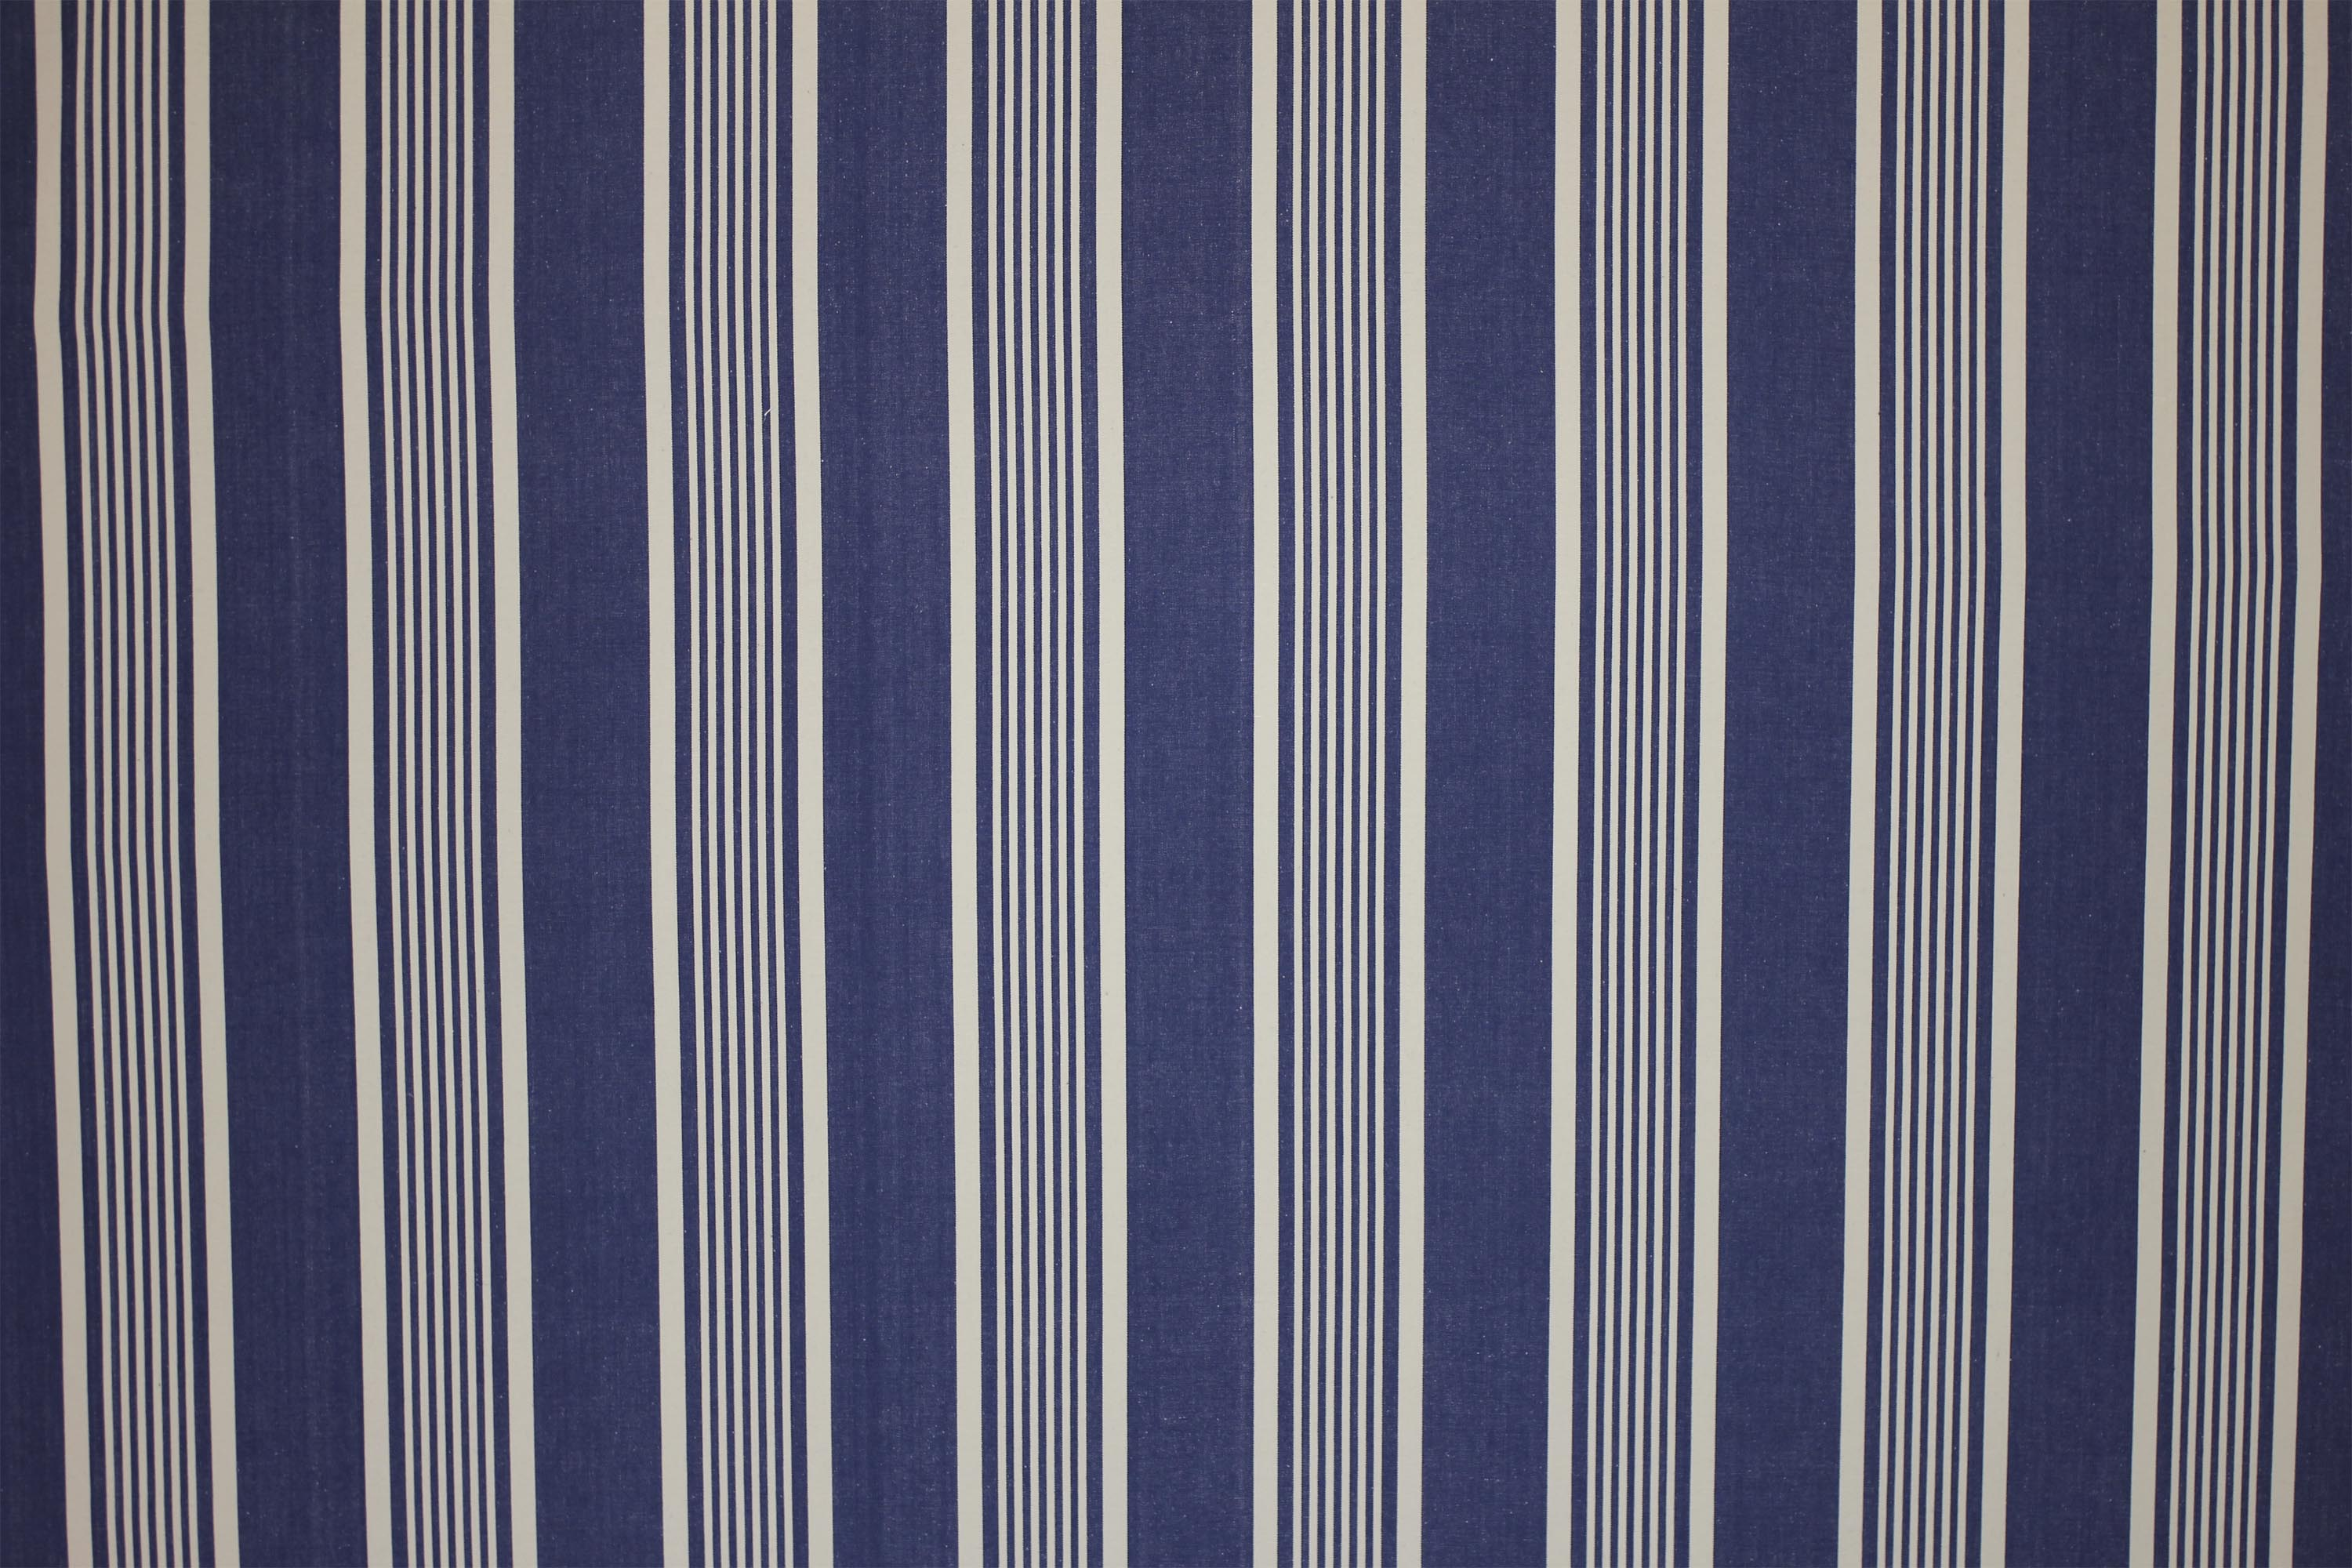 Navy Striped Fabrics | Stripe Cotton Fabrics - Snowboarding Stripe